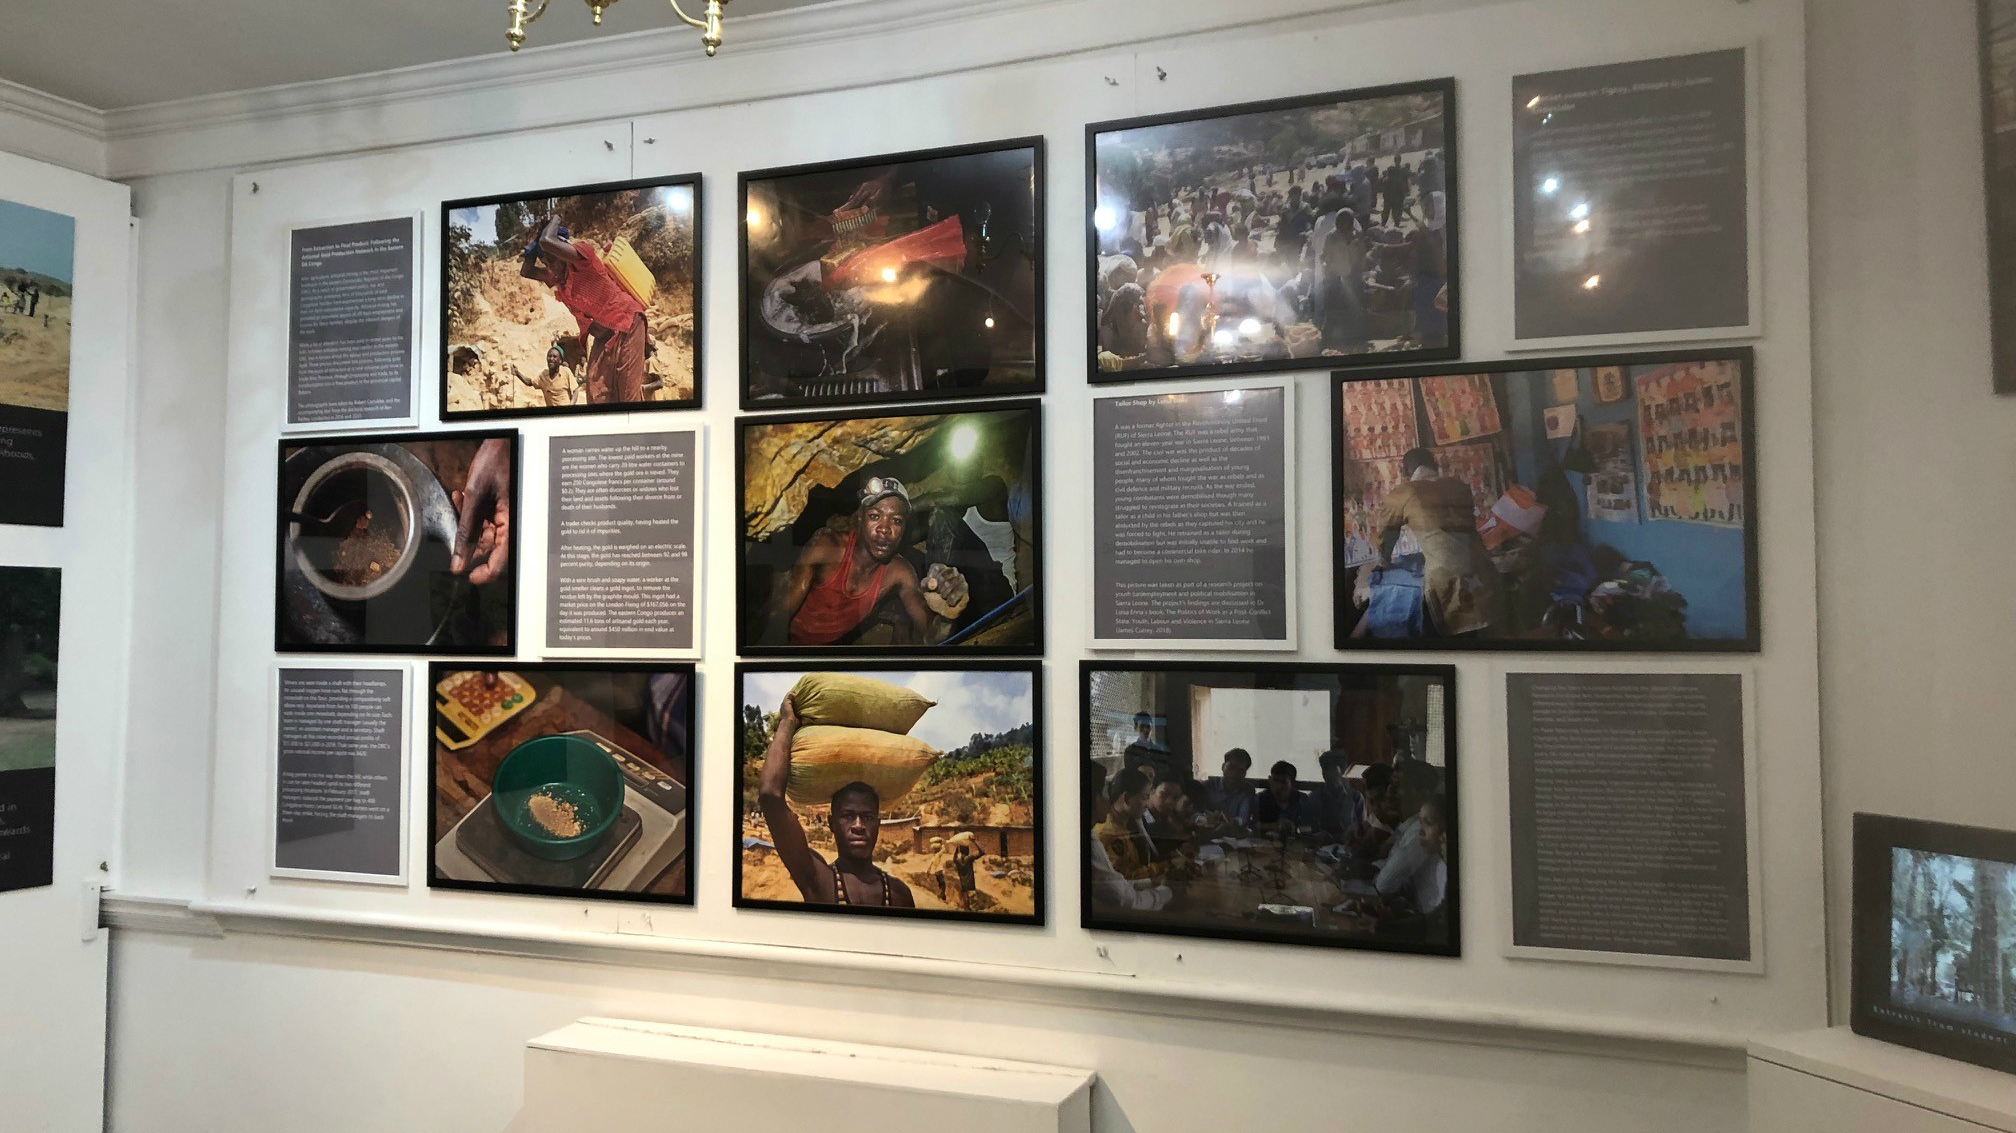 Selection of images from research presented as part of an exhibition